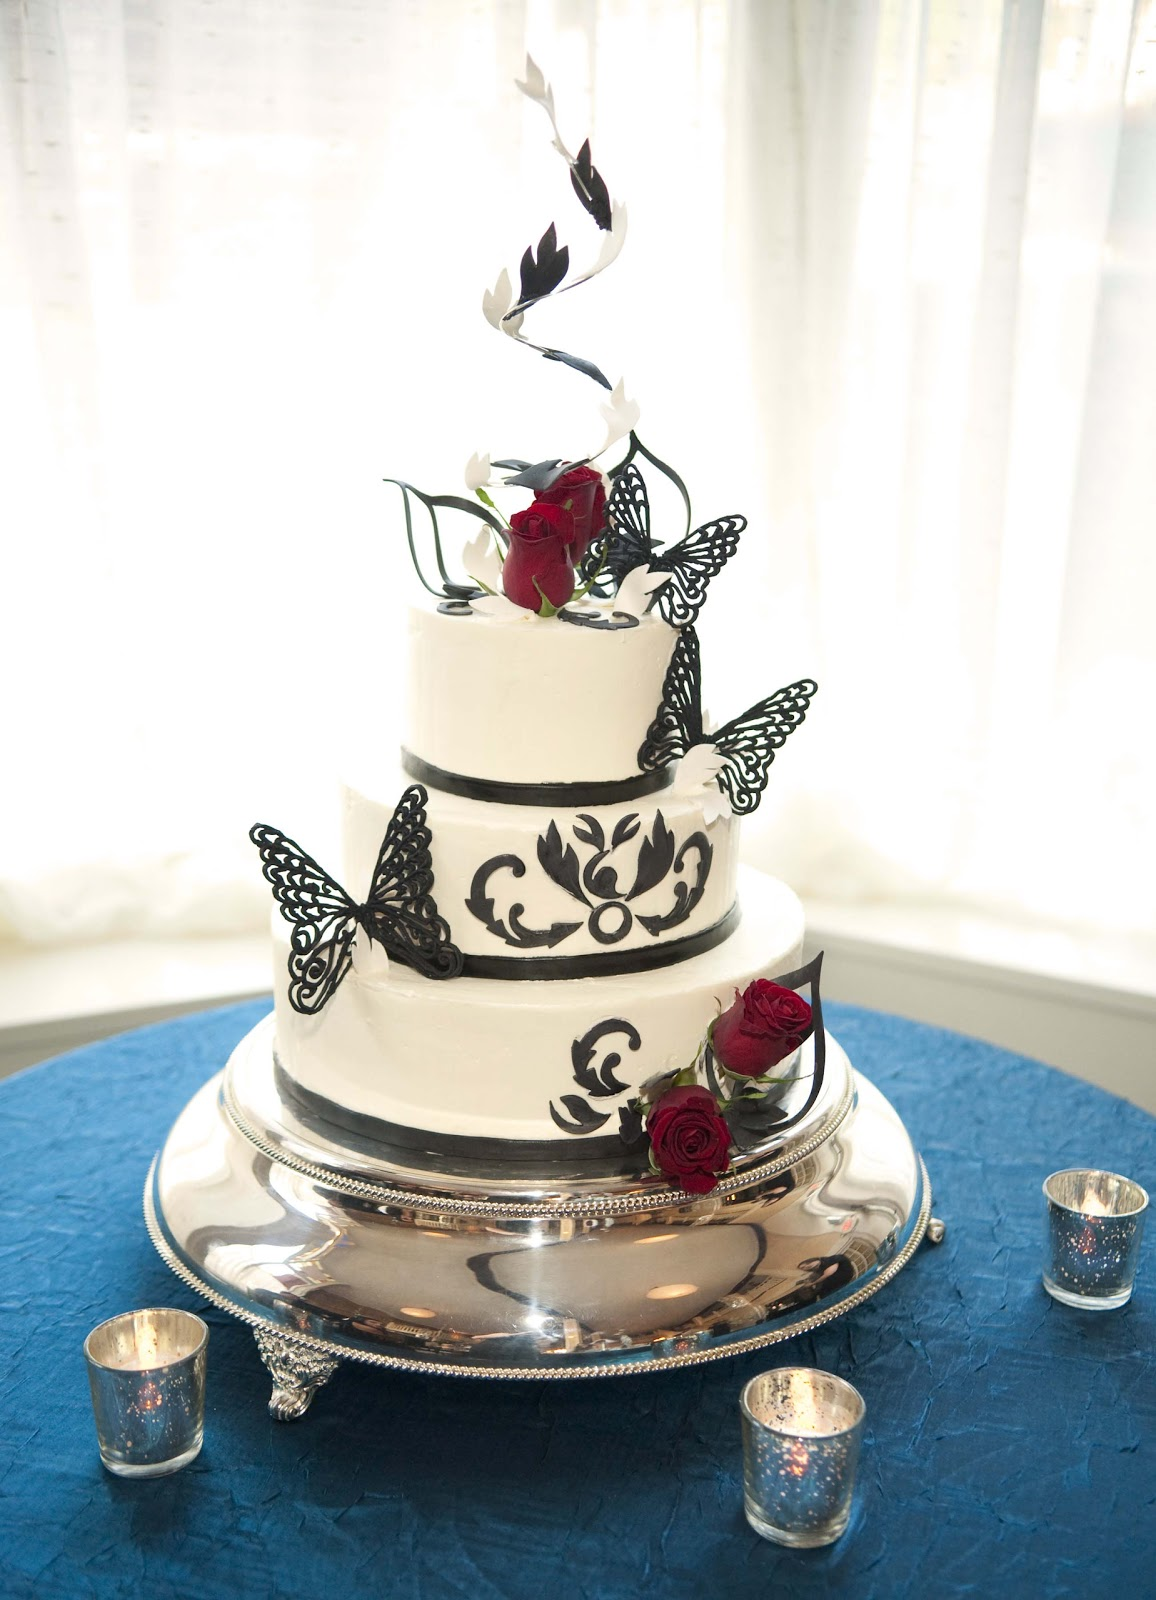 Cake Art Divas : What are The Divas doing?!!!: A Day in the Life of The Divas